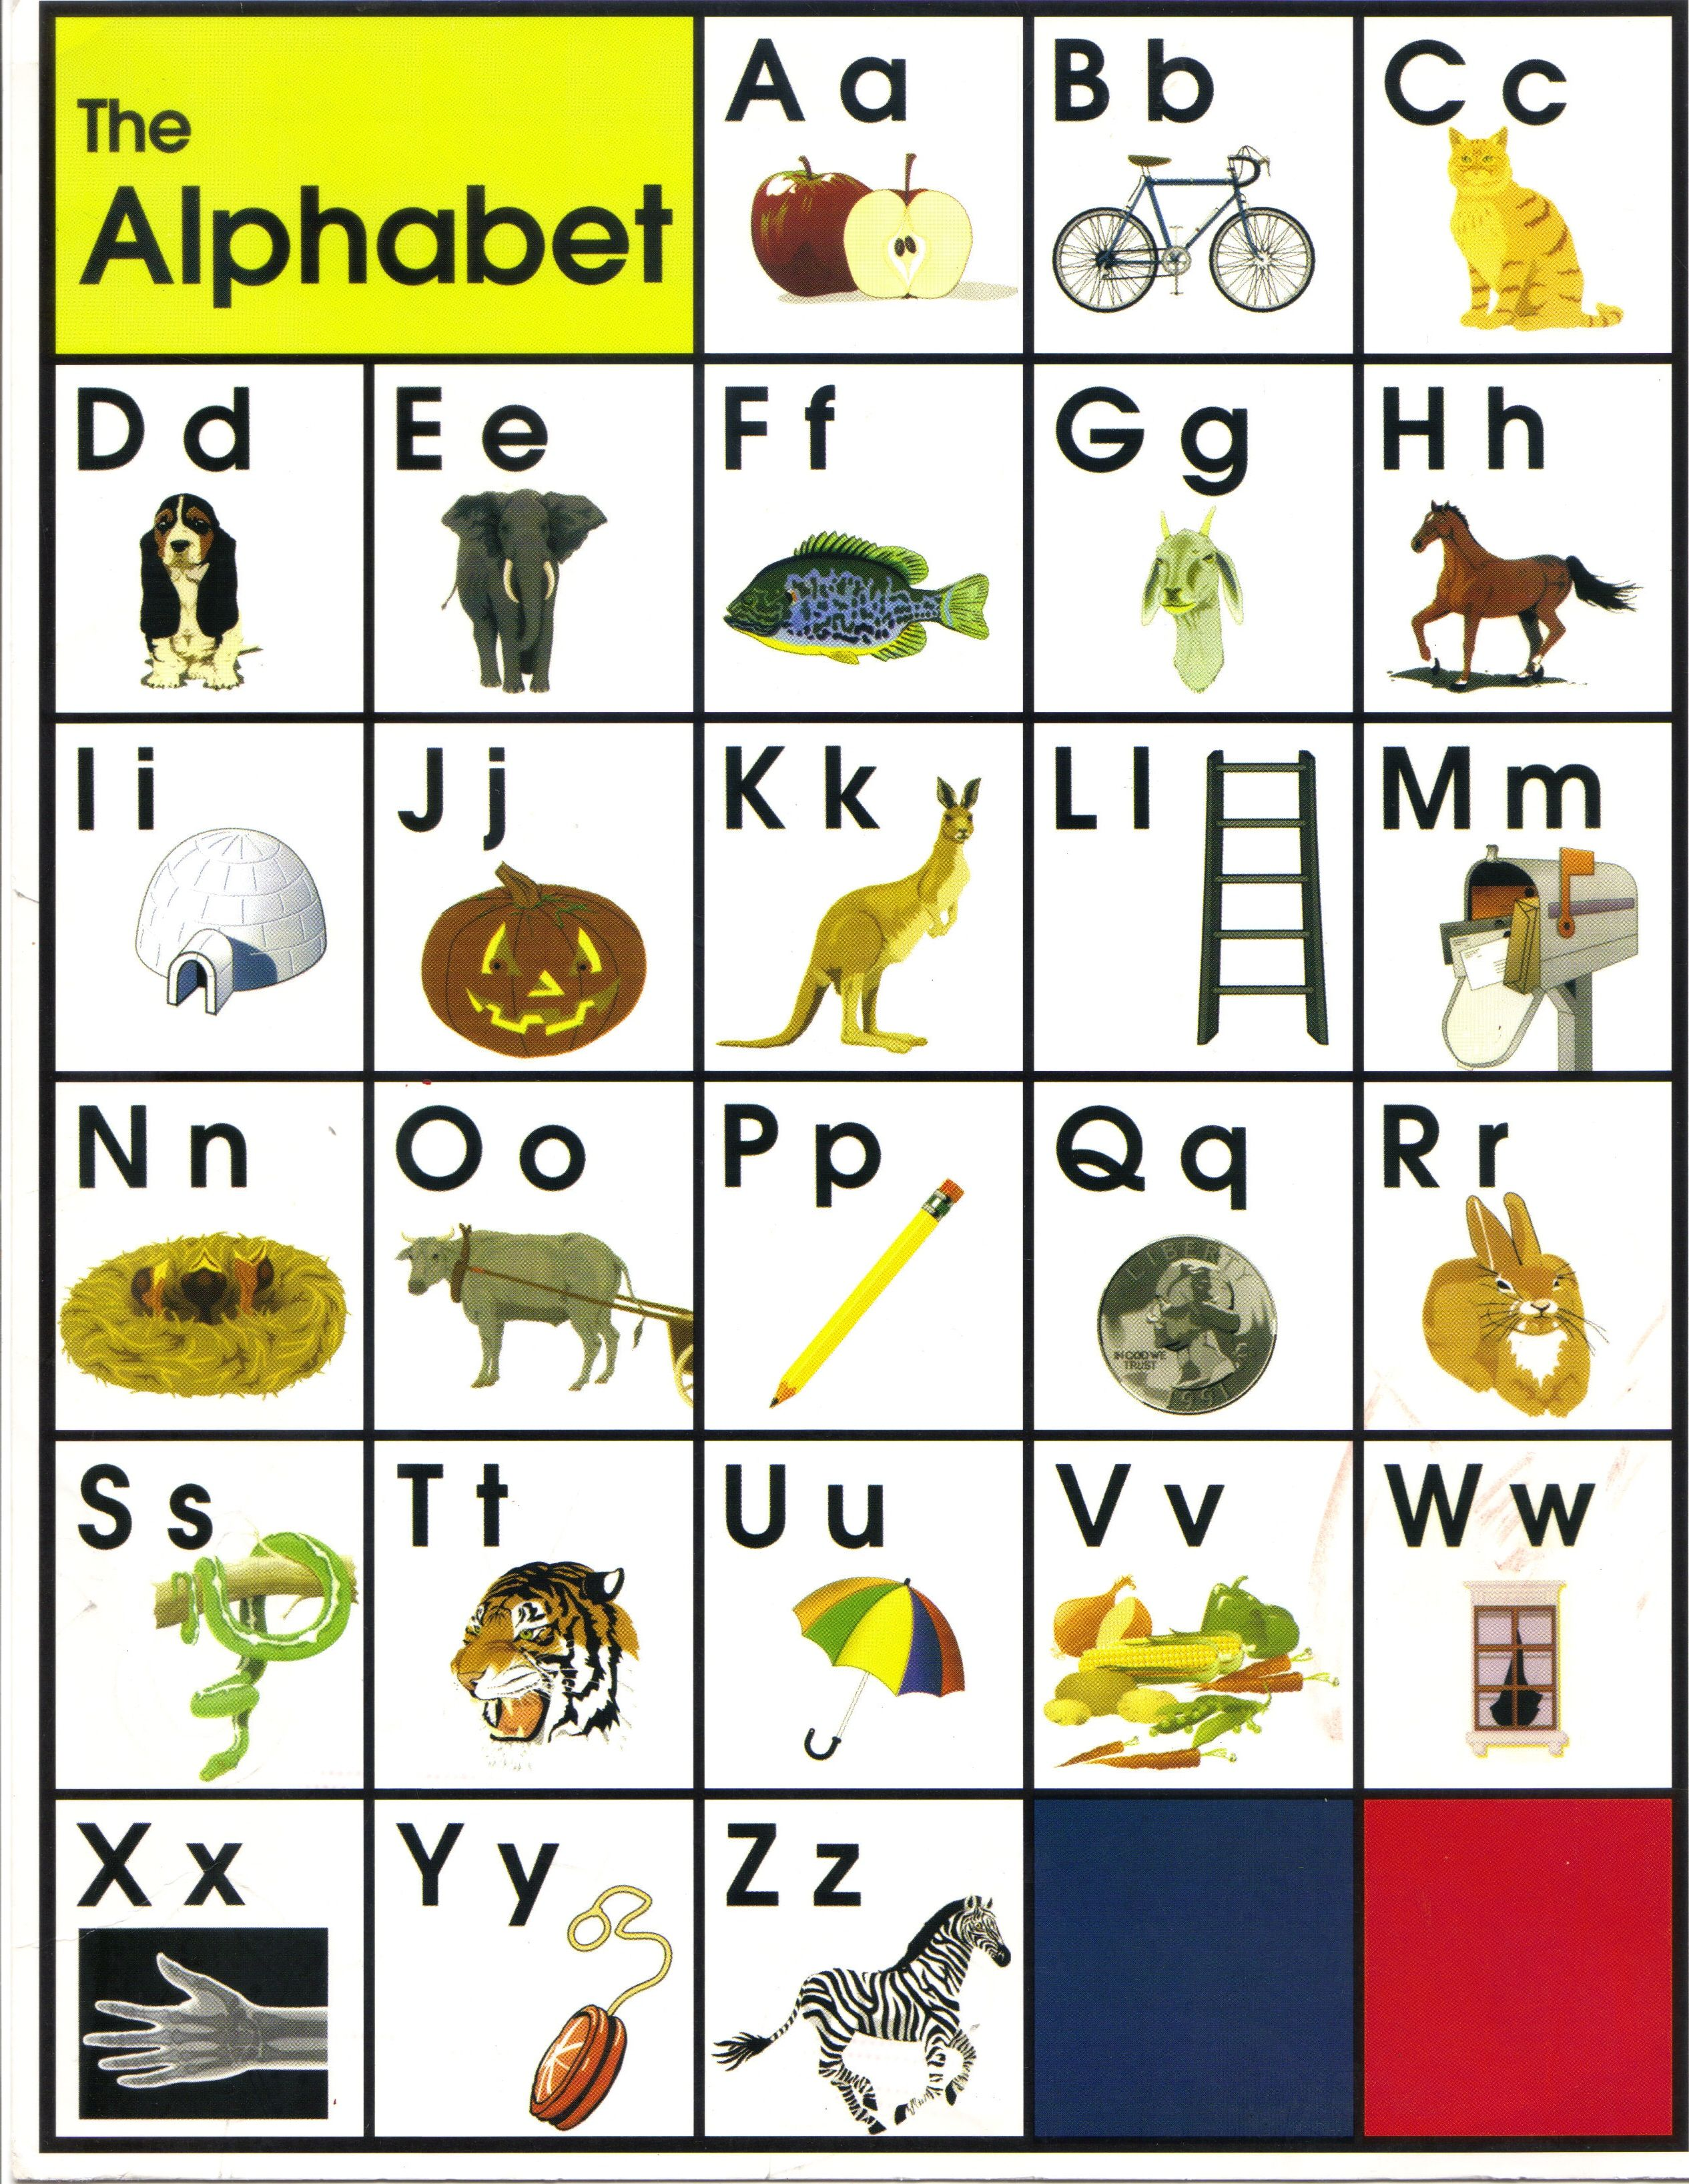 alphabet for preschool | Kindergarten Alphabet Chart | Abc ...